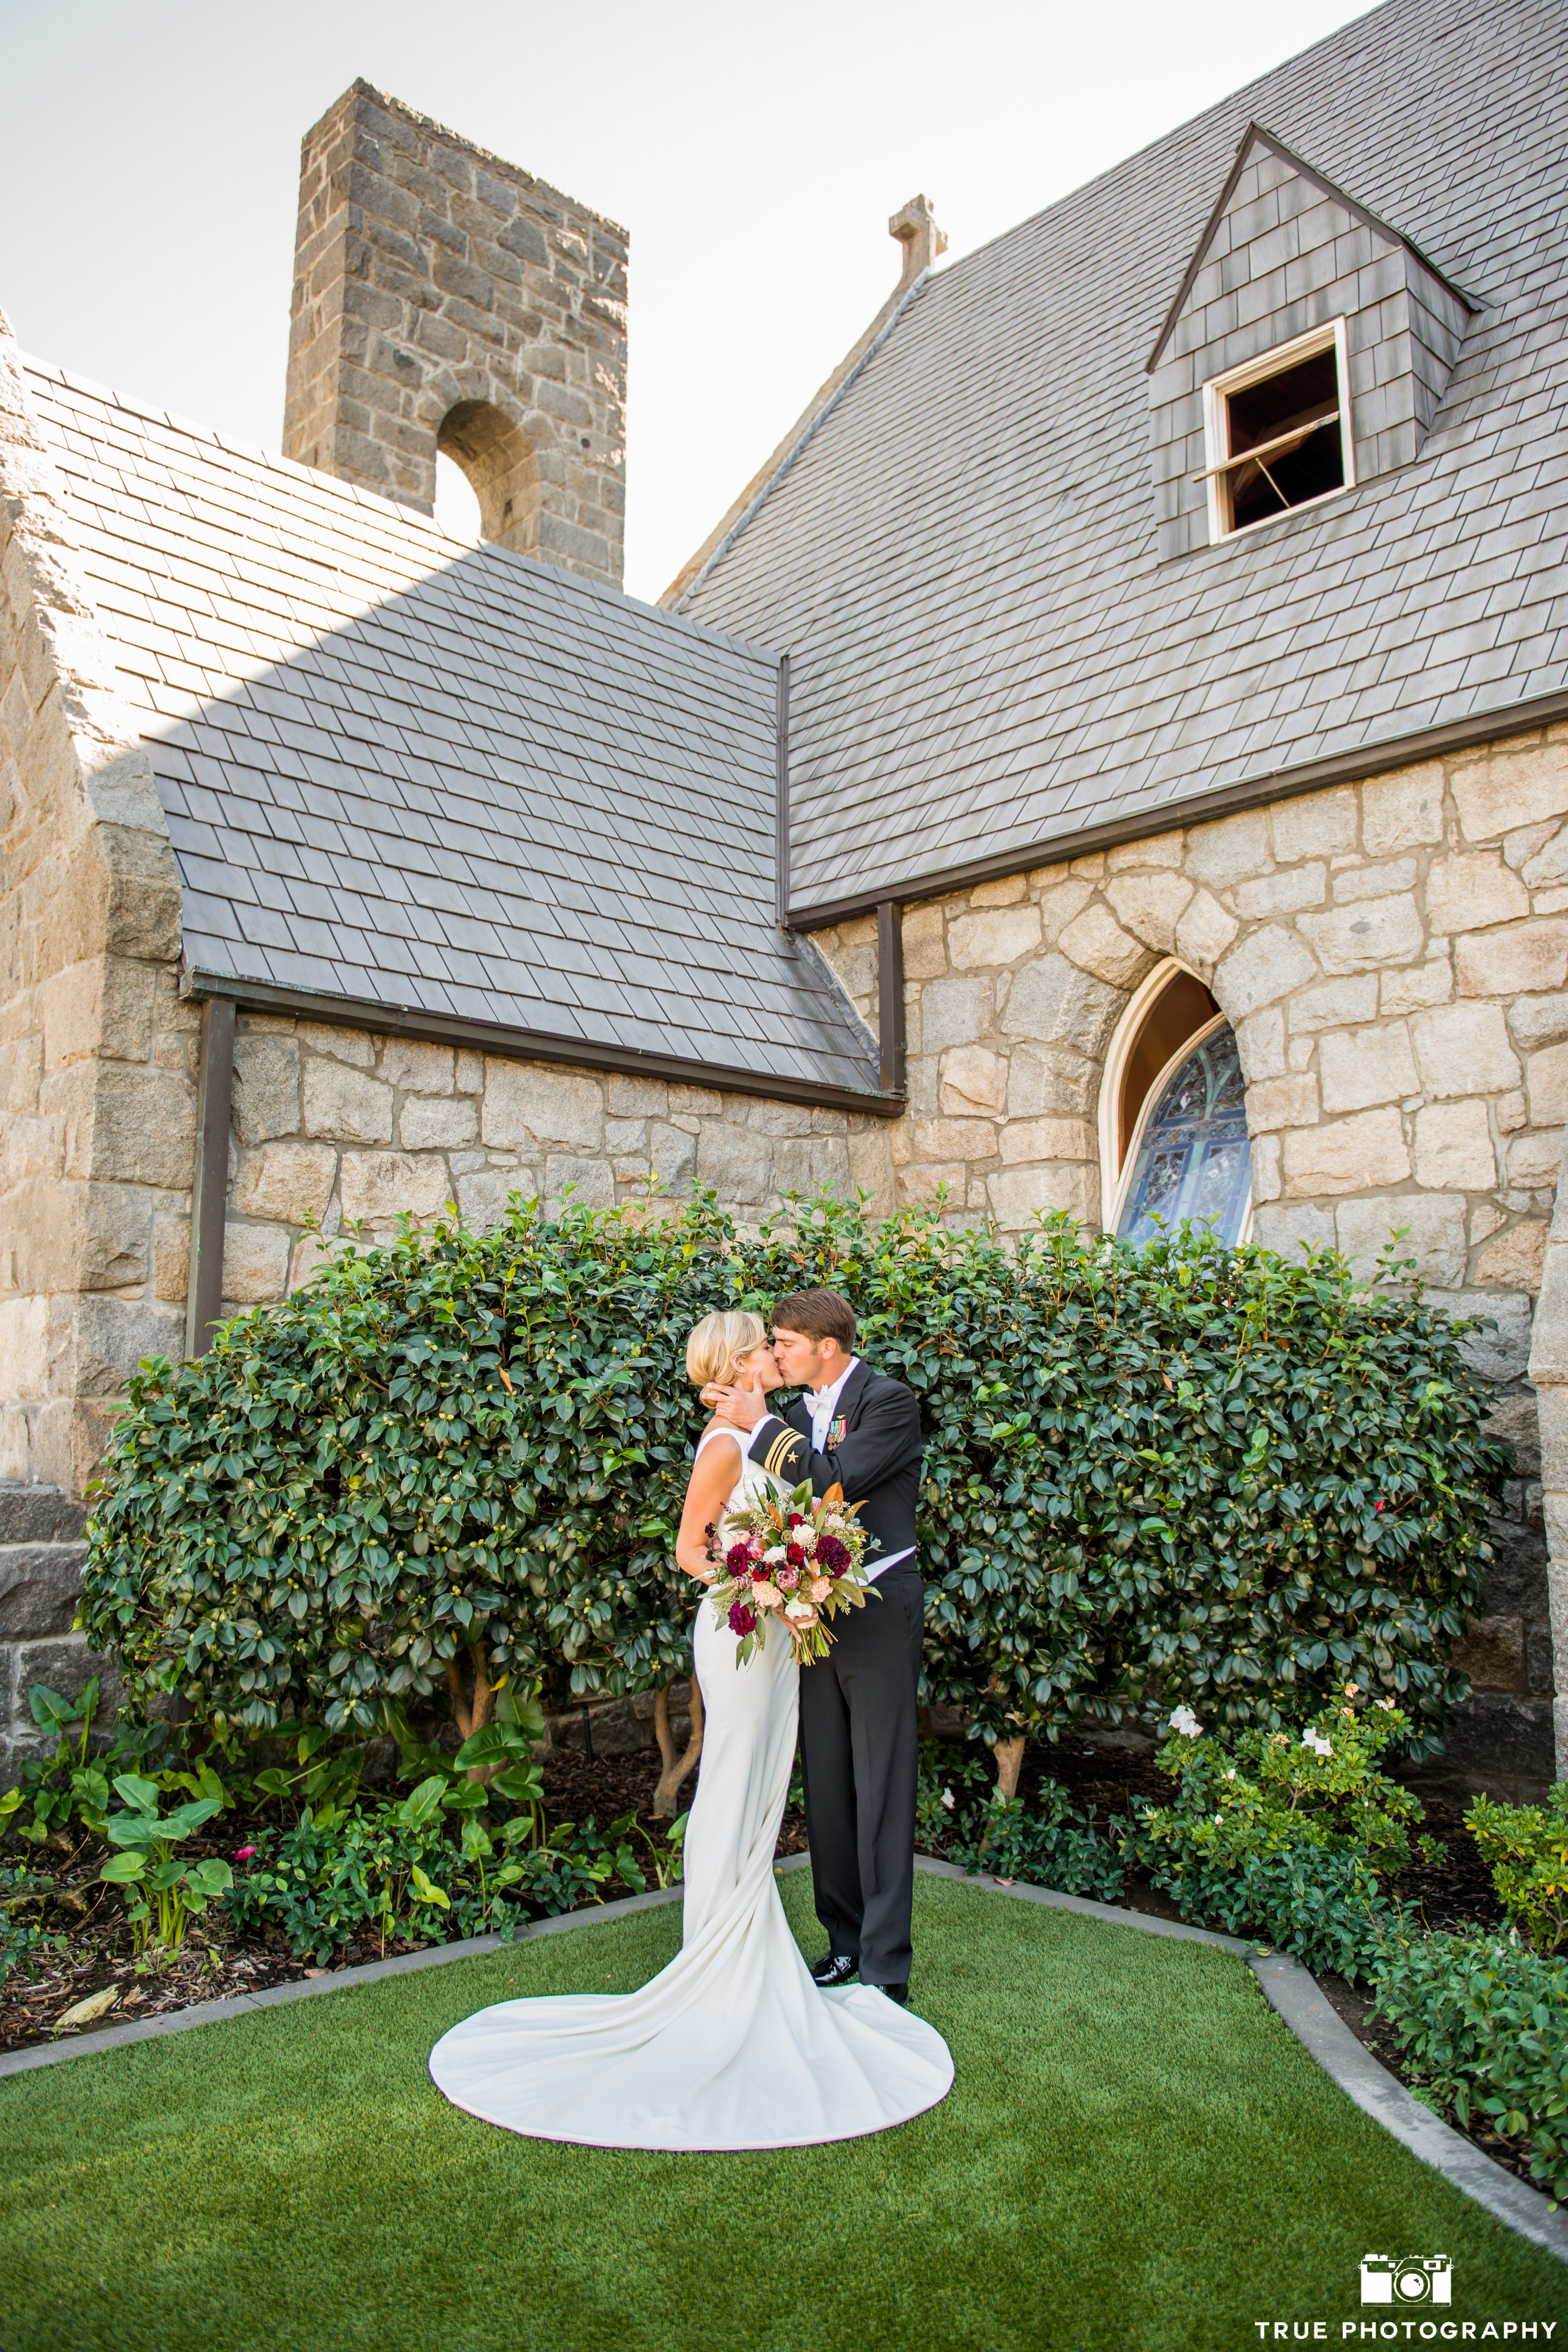 Amy June Weddings and Events - Amy June Weddings and Events